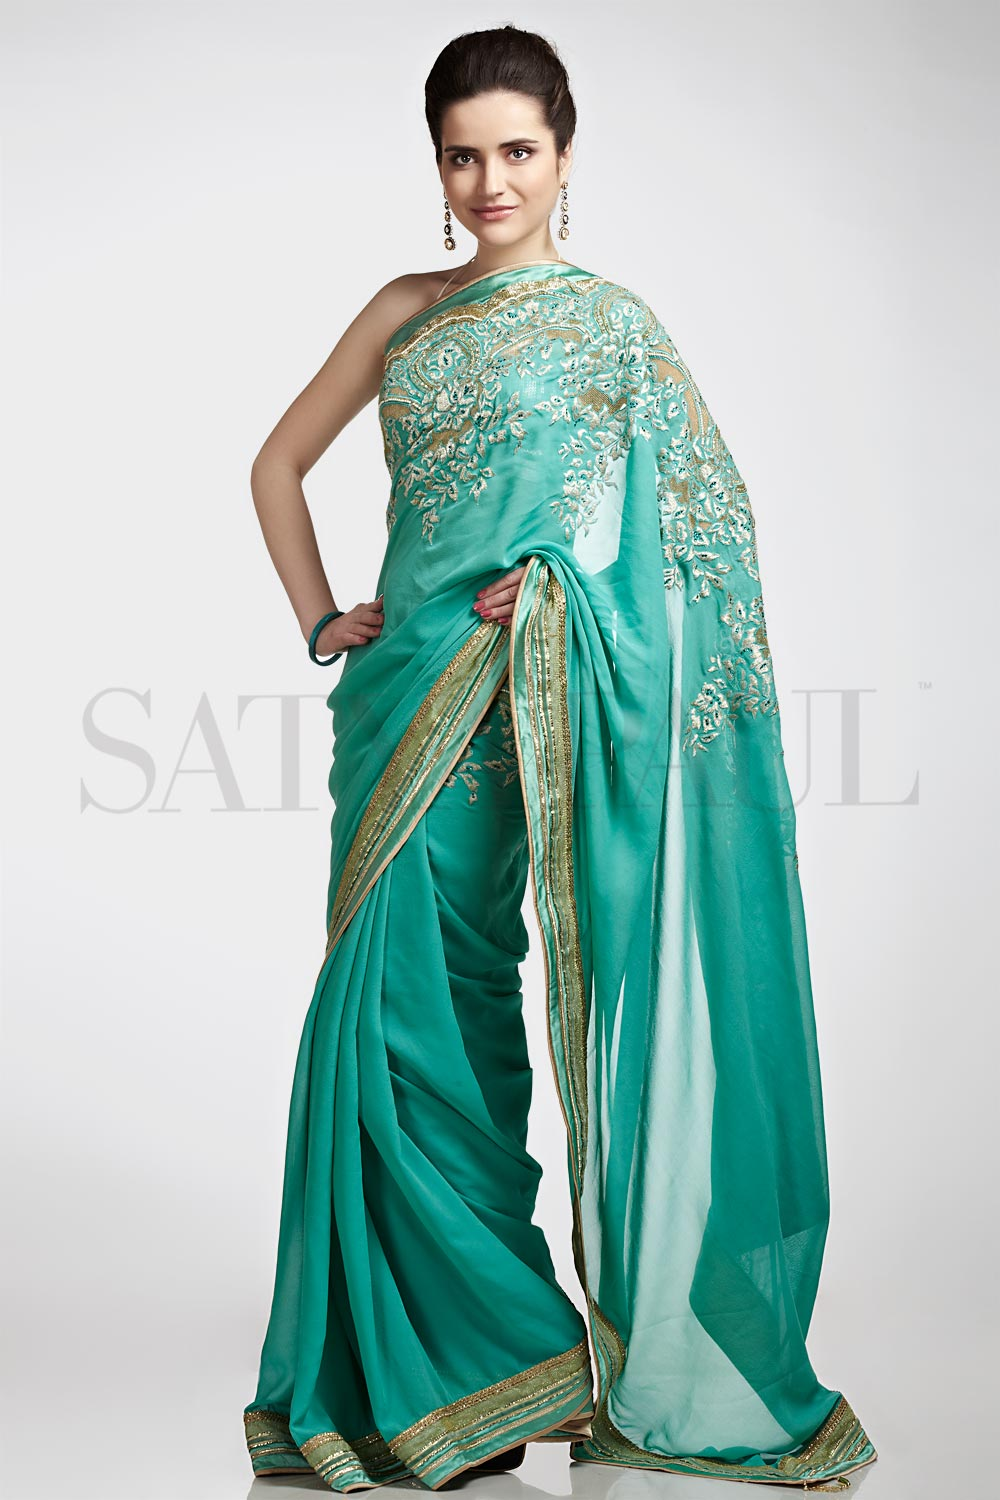 New Fashion Trends  India For Sarees